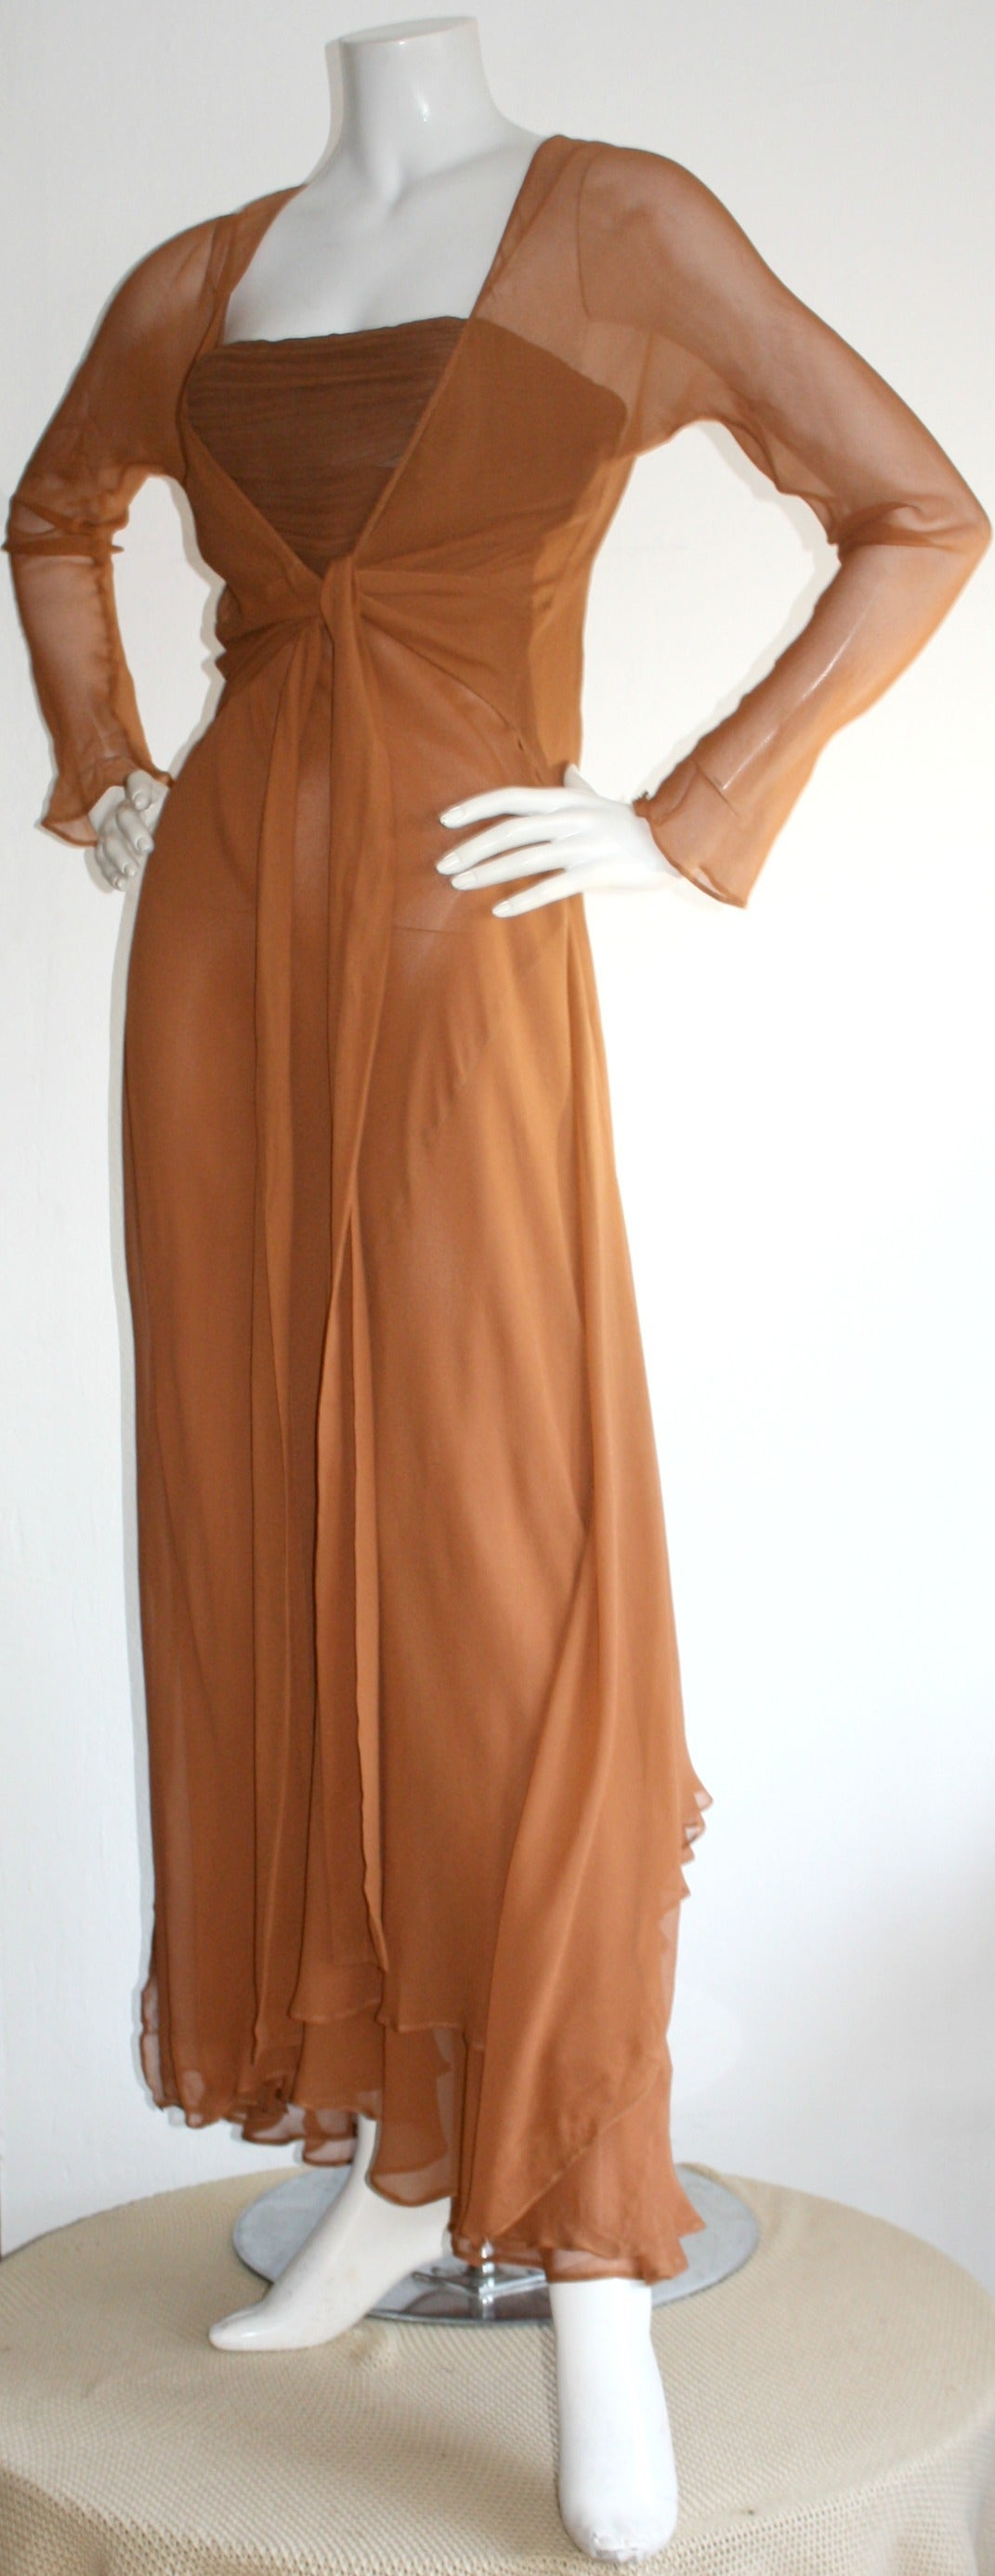 Exquisite Vintage Alberta Ferretti Grecian Goddess Chiffon Gown And Jacket In Excellent Condition For Sale In Chicago, IL